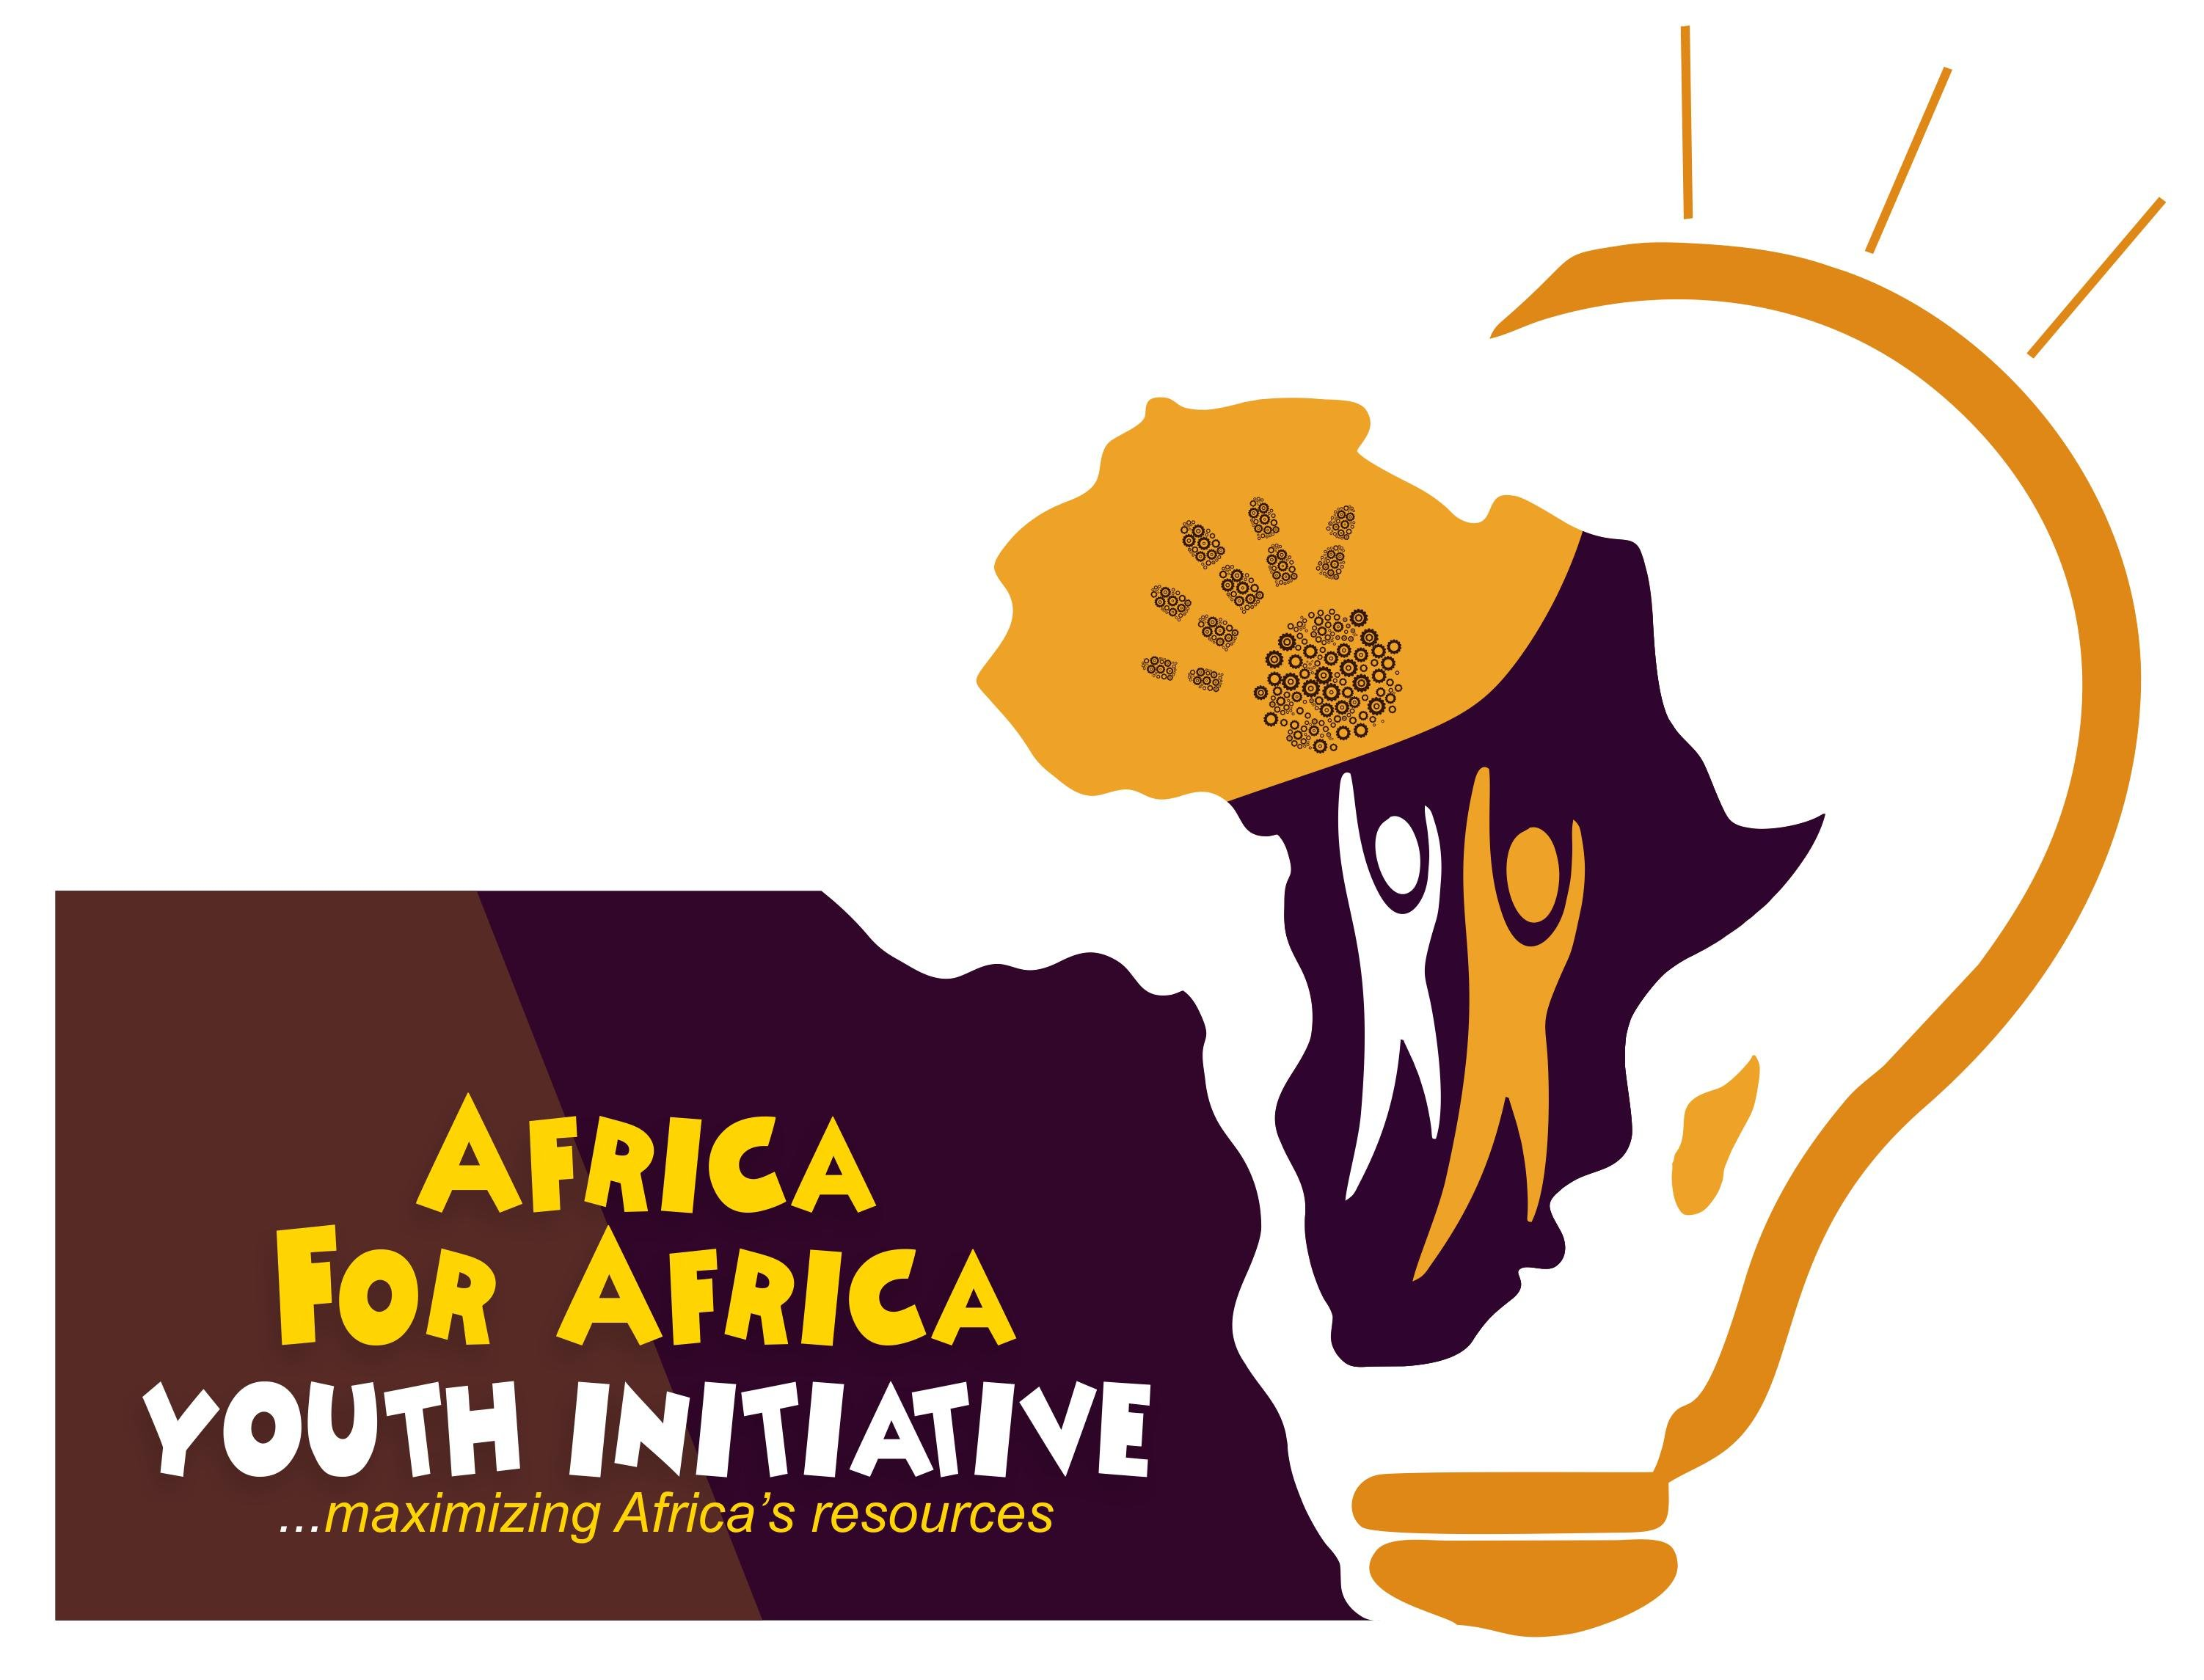 Africa For Africa Youth Initiative